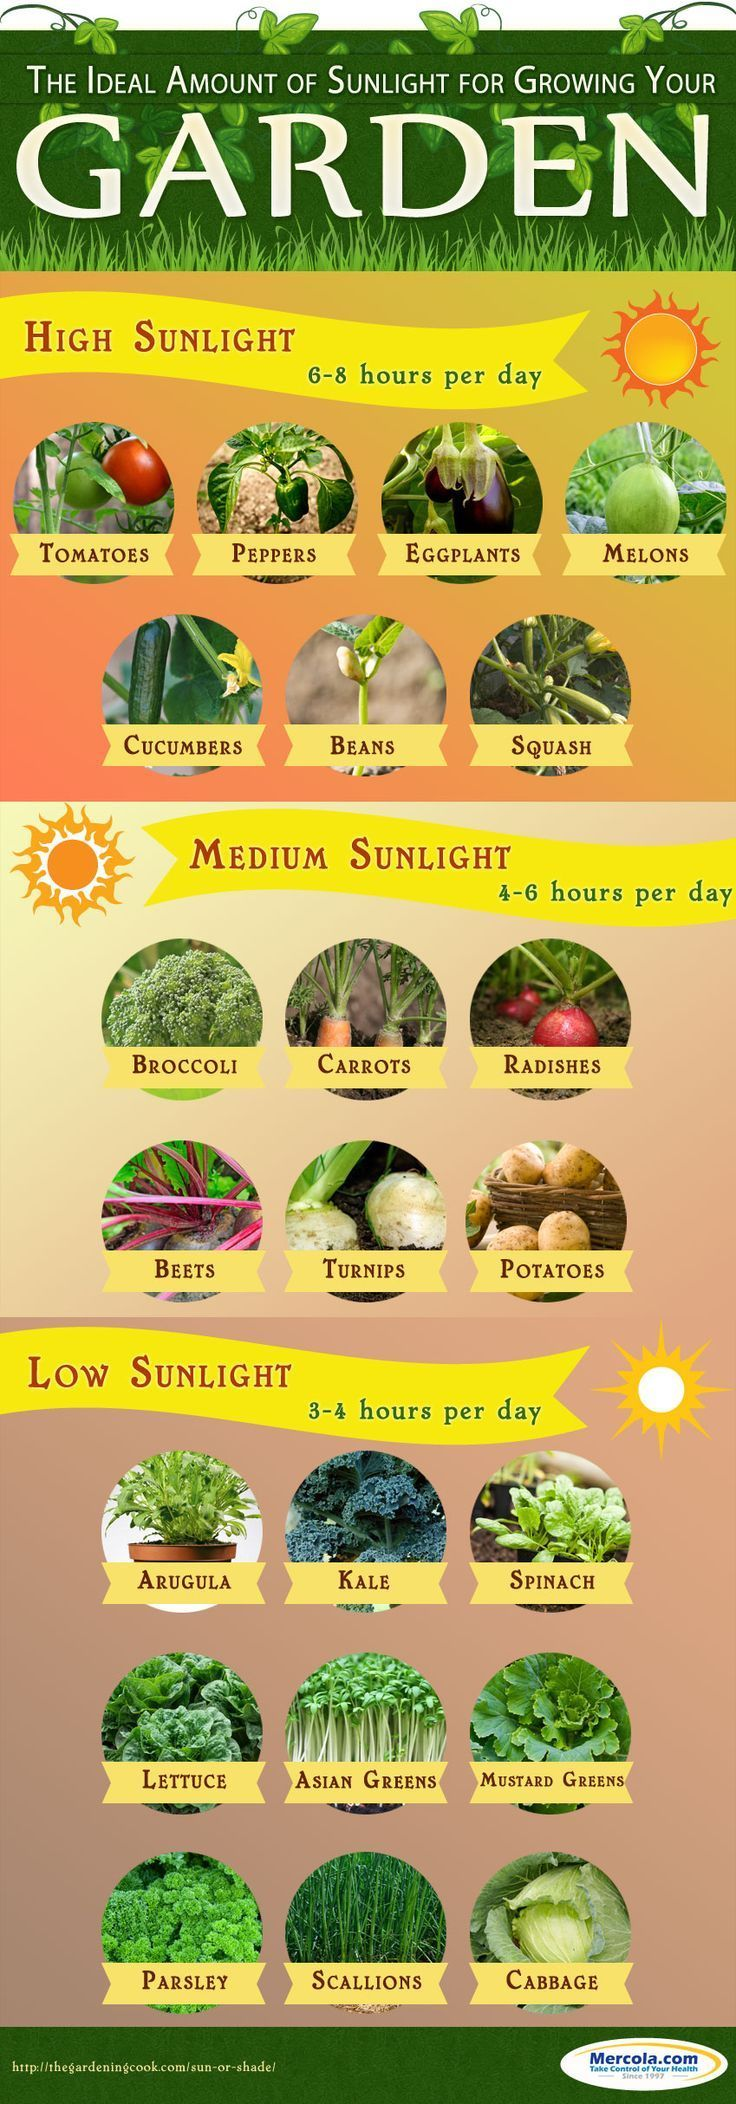 get your dose of gardening ideas and important tips to consider for the ideal amounts of sunlight for your plants as recommended